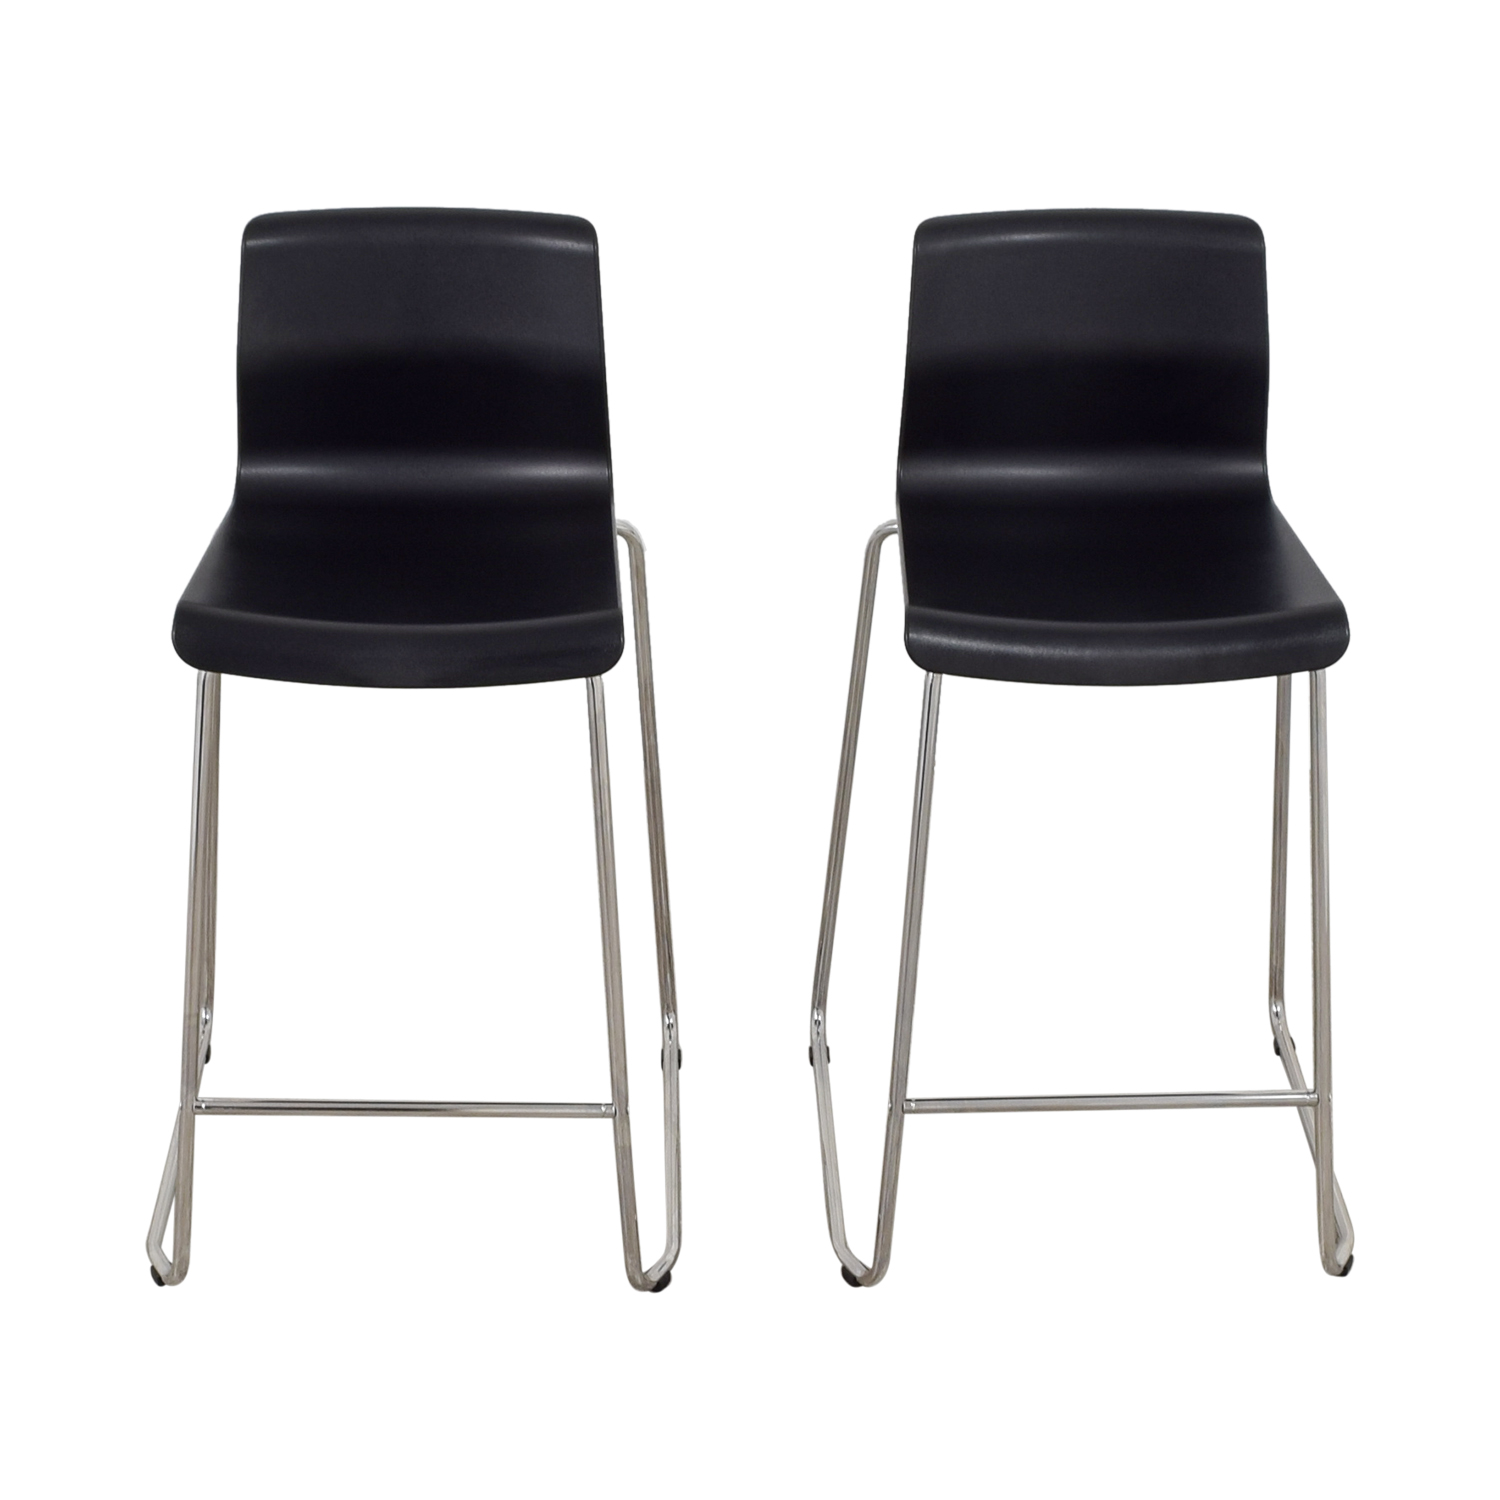 36 Inch Bar Stools Ikea 81 Off Ikea Ikea Black And Metal Bar Stools Chairs